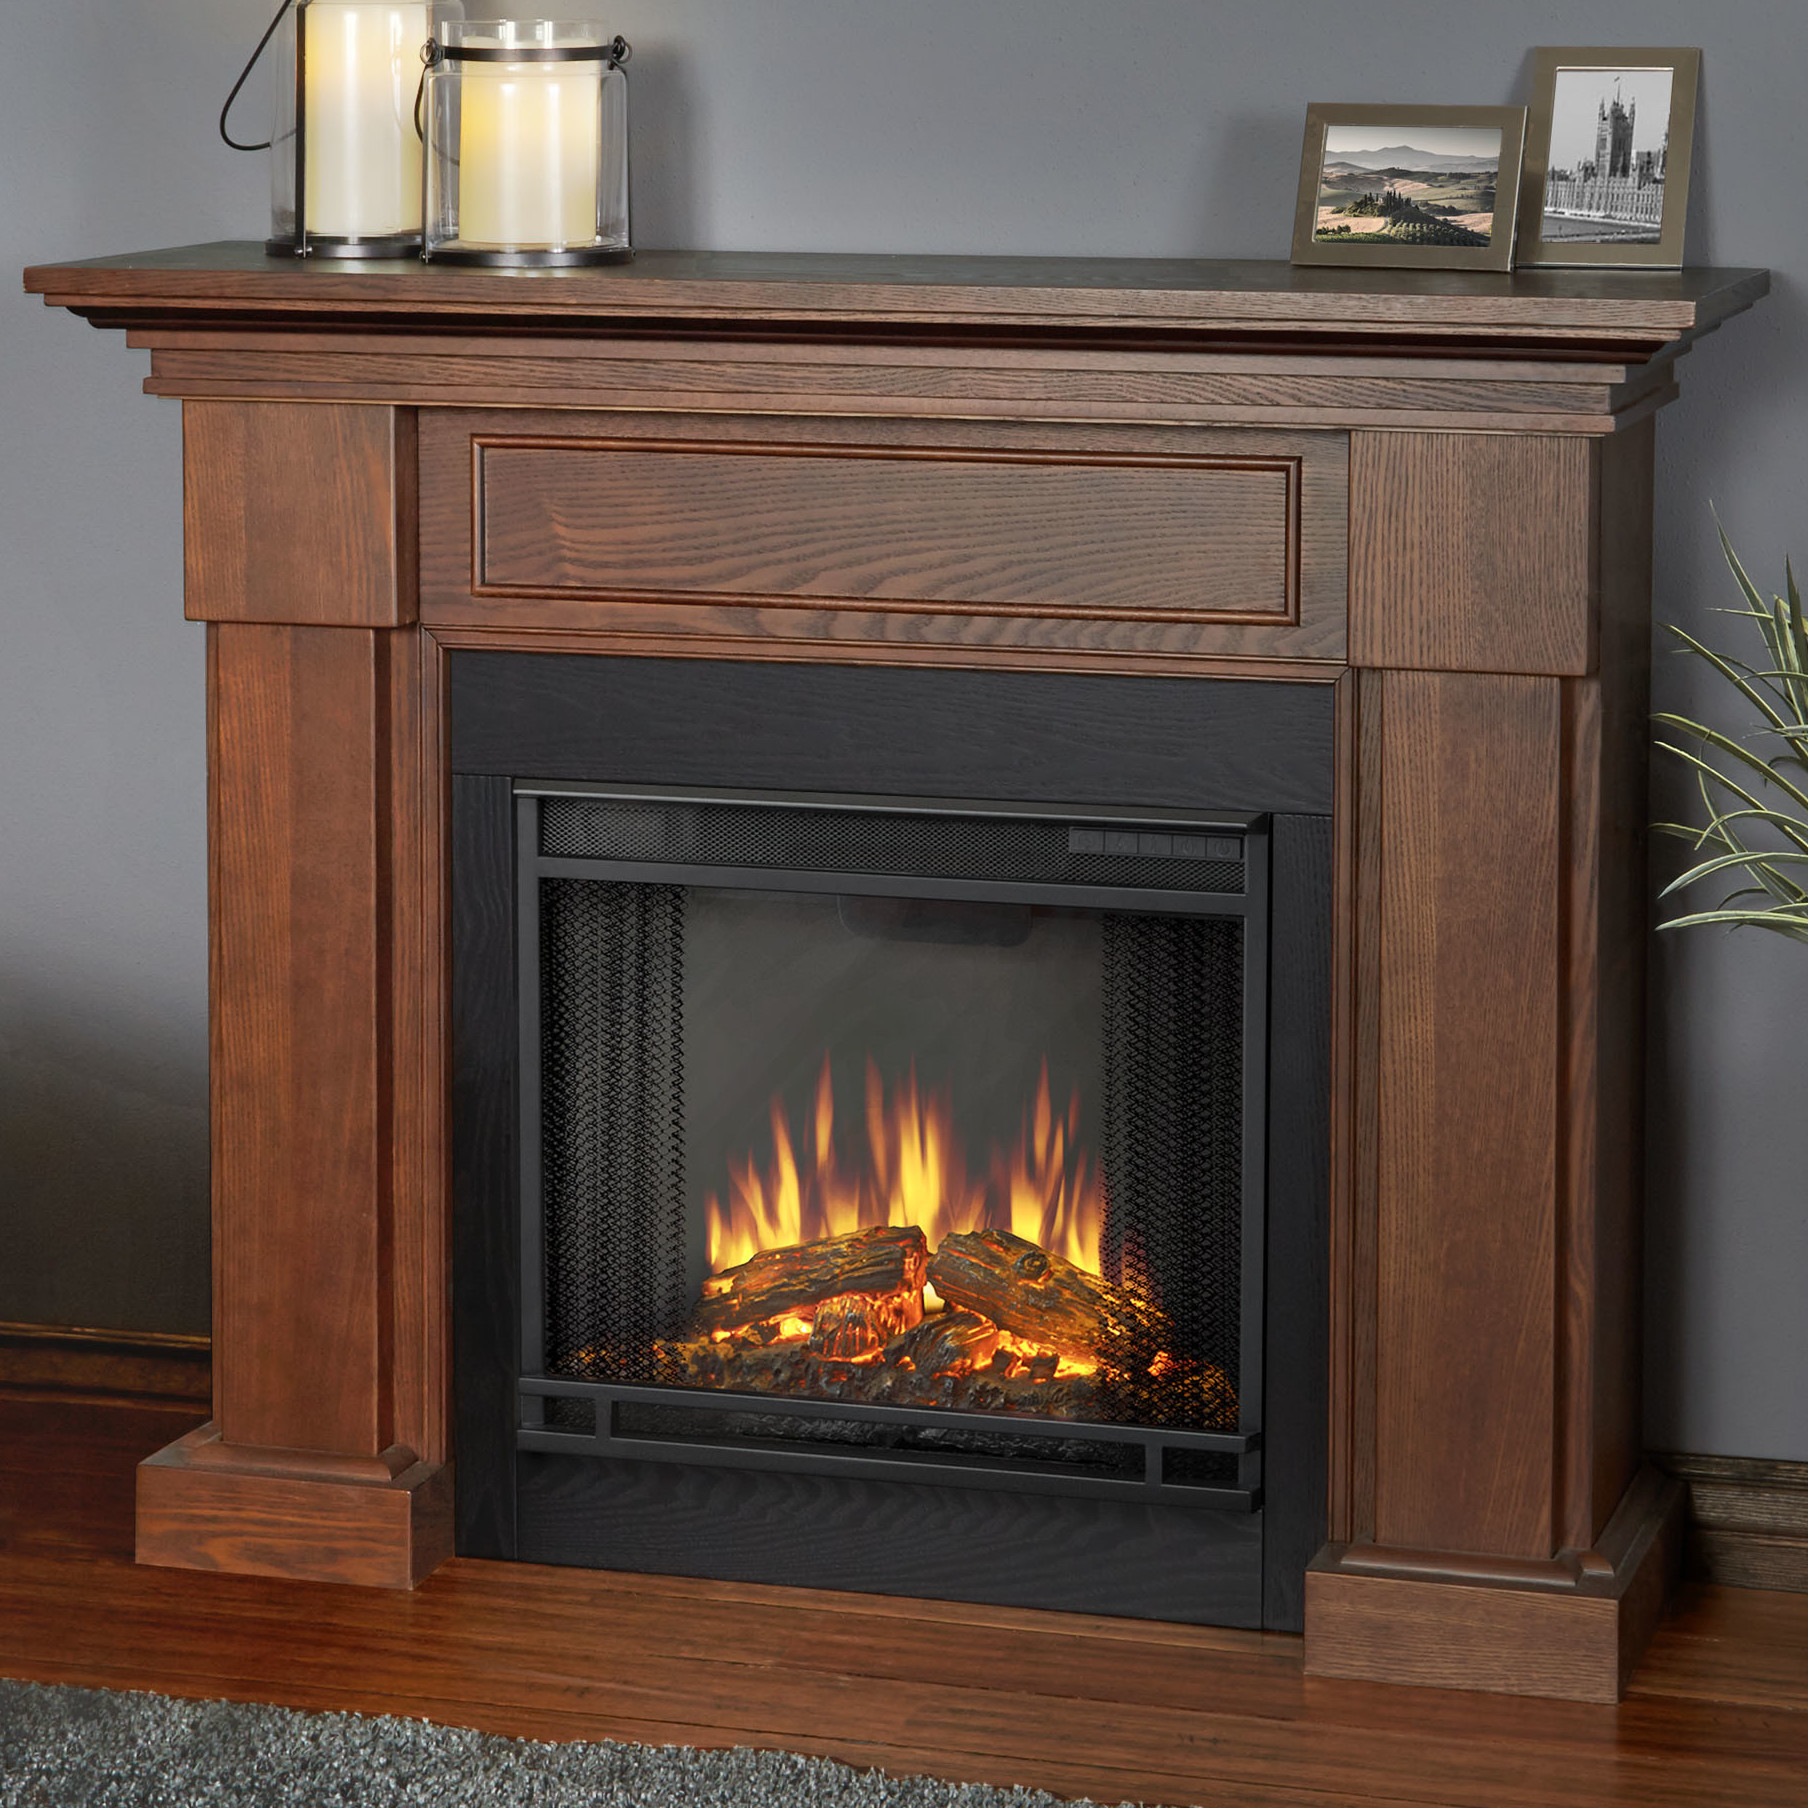 Best ideas about Real Flame Fireplace . Save or Pin Real Flame Hillcrest Electric Fireplace & Reviews Now.